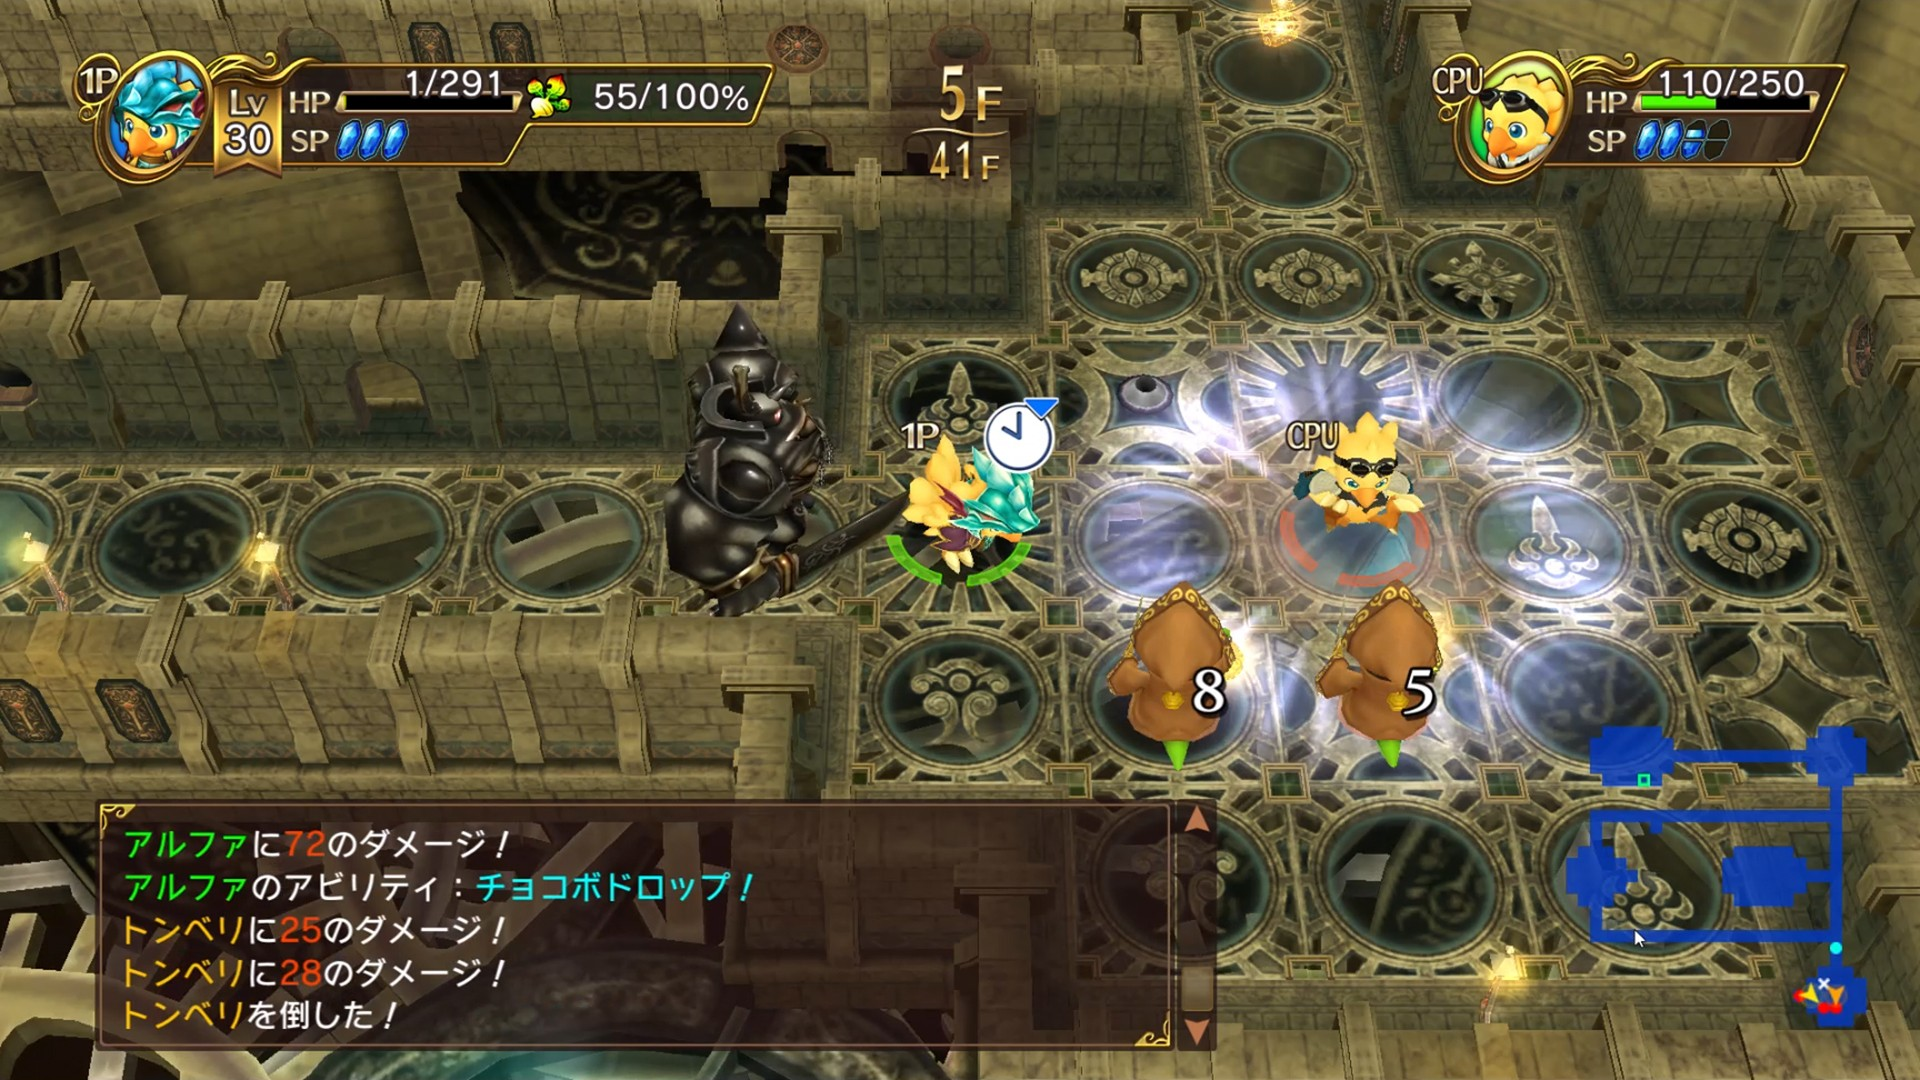 Chocobo's Mystery Dungeon: Every Buddy! Now Available for Western